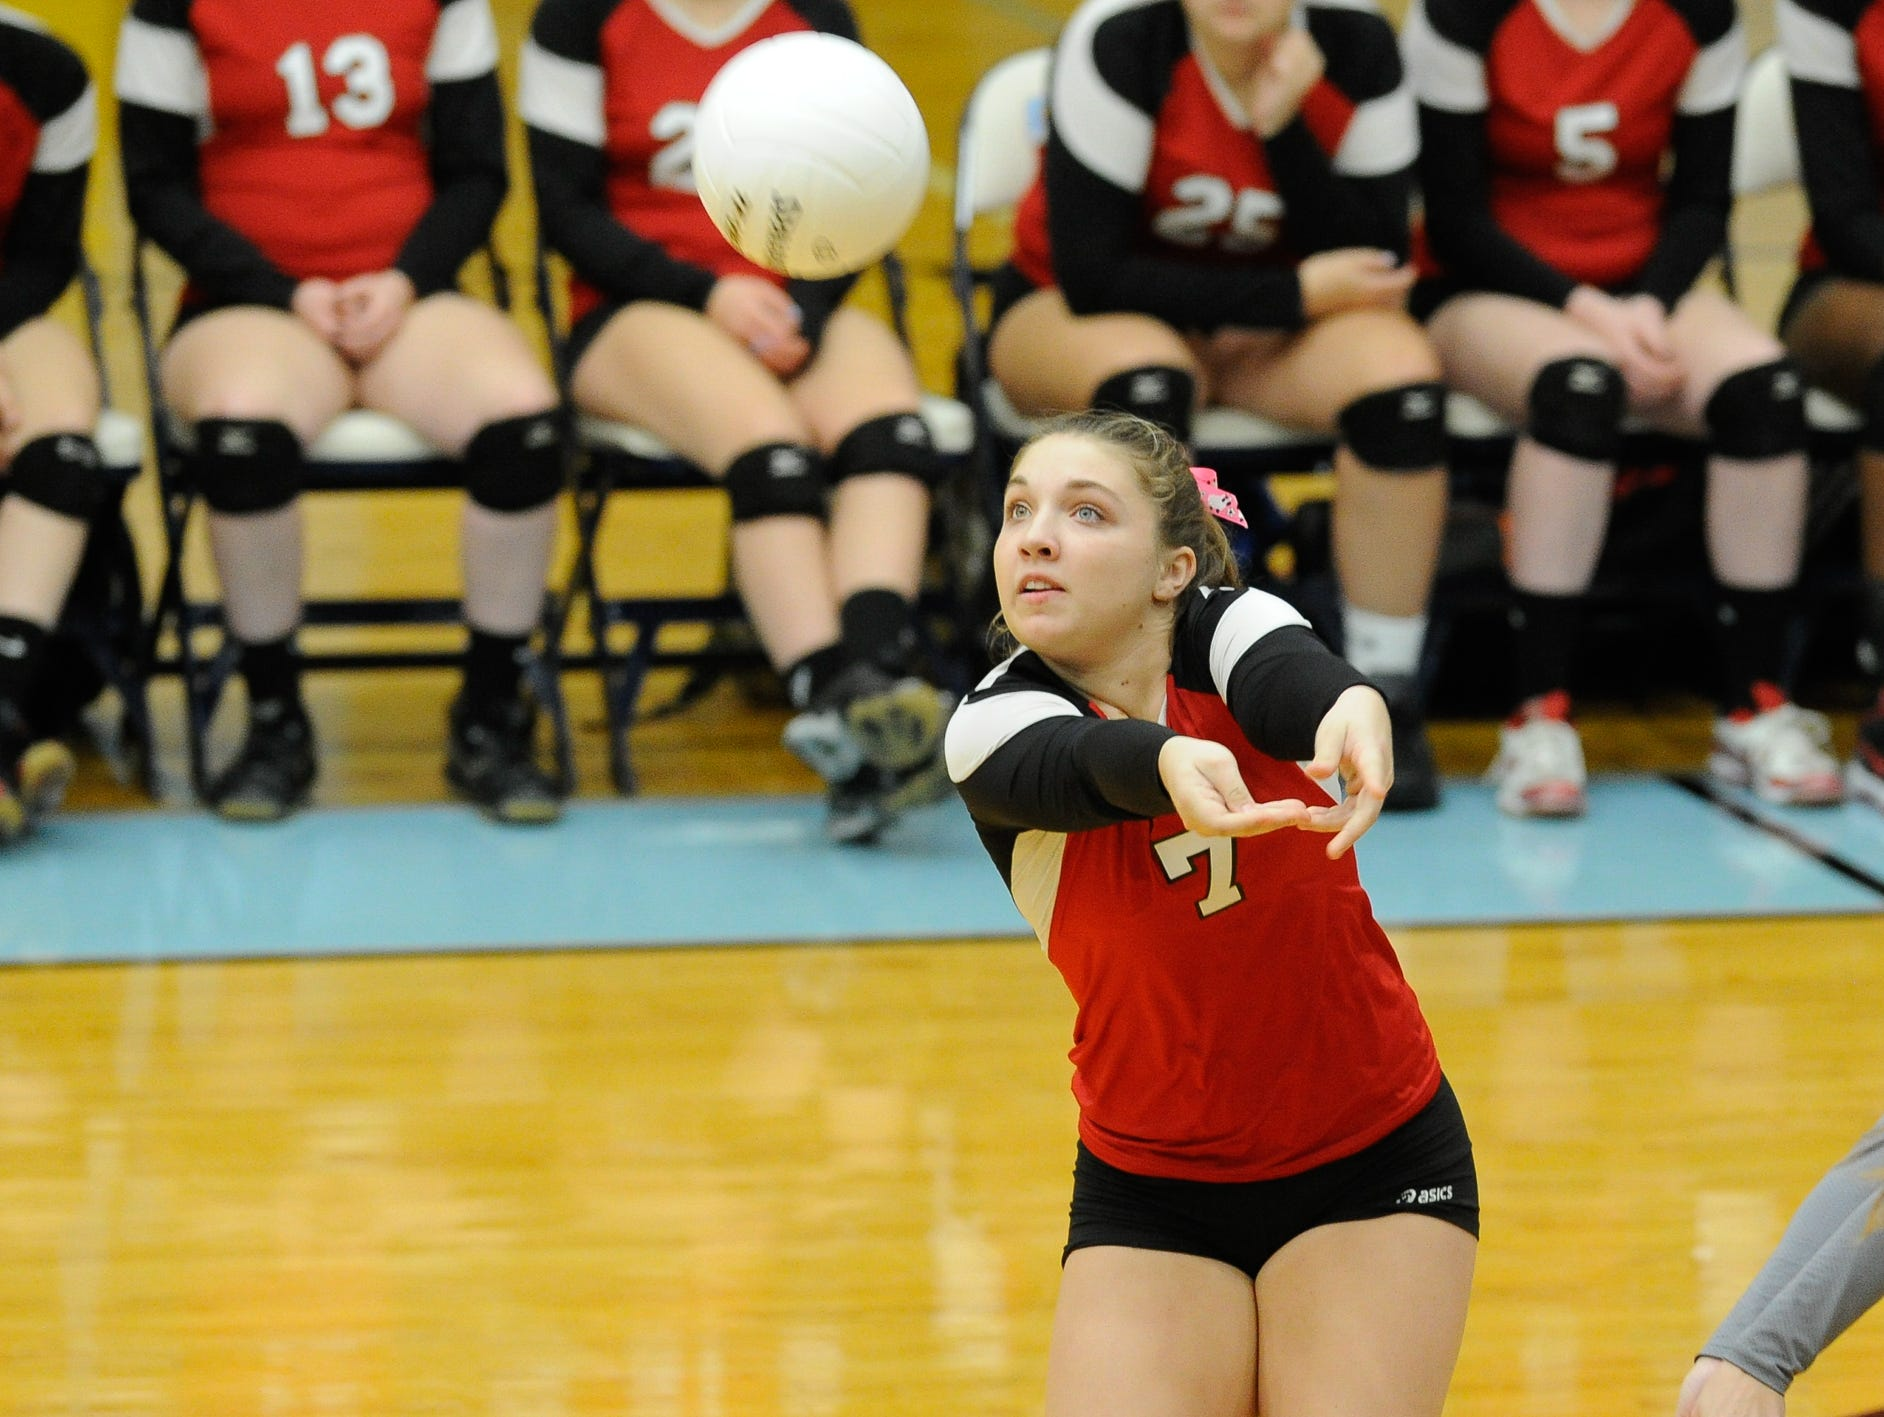 Conrad's #7 Anna Phillips setting the ball in the first game against Cape Thursday night at Cape Henlopen High School.